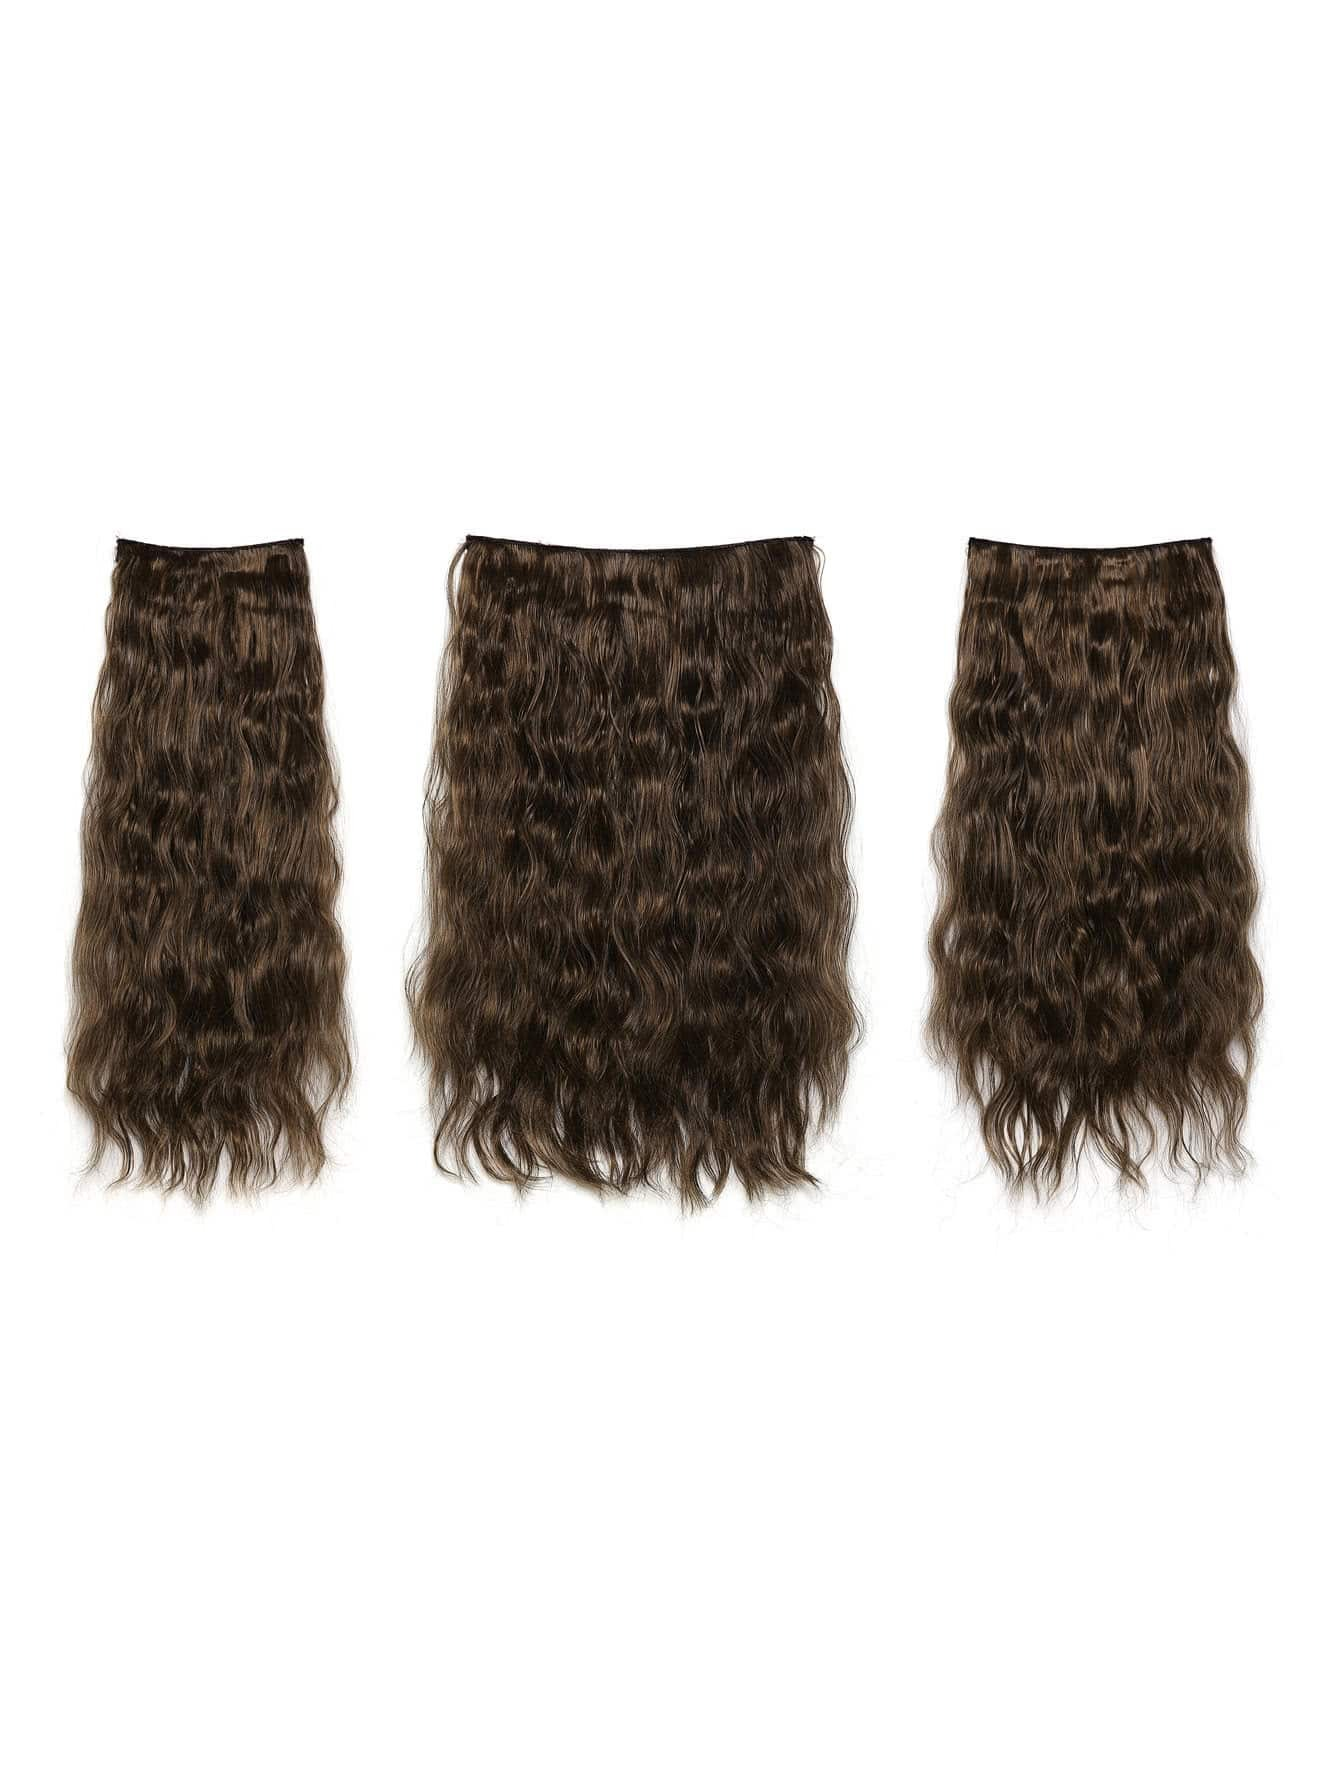 Warm Brunette Clip In Curly Hair Extension 3pcs